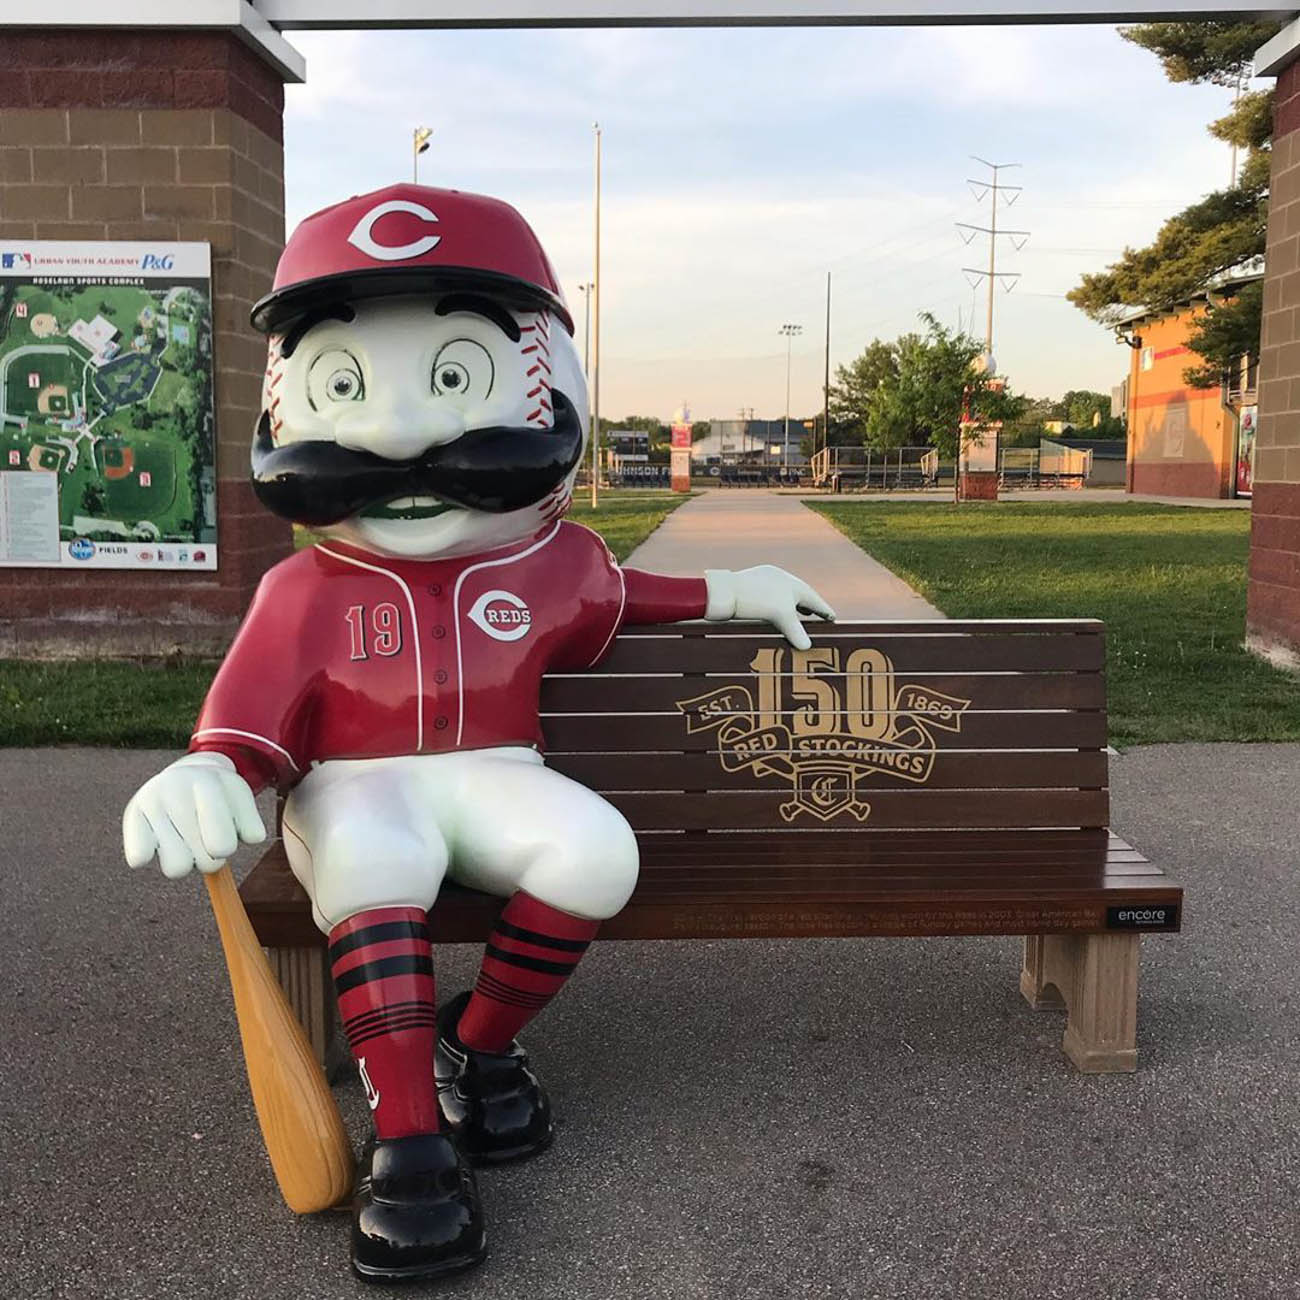 To celebrate the Reds' 150th Anniversary, 24 benches featuring Mr. Redlegs sculptures have been added to various spots around the area, as well as out of town locations including Dayton, Loveland, and Louisville, for the perfect Reds photo op. The mascot sports different uniforms from throughout the team's history at each of the benches. The Reds have been wearing these same throwback uniforms during their 2019 season. / Location: Reds Youth Academy / Uniform: 2019 / Image courtesy of Instagram user @cincinnat.ian   // Published: 5.14.19